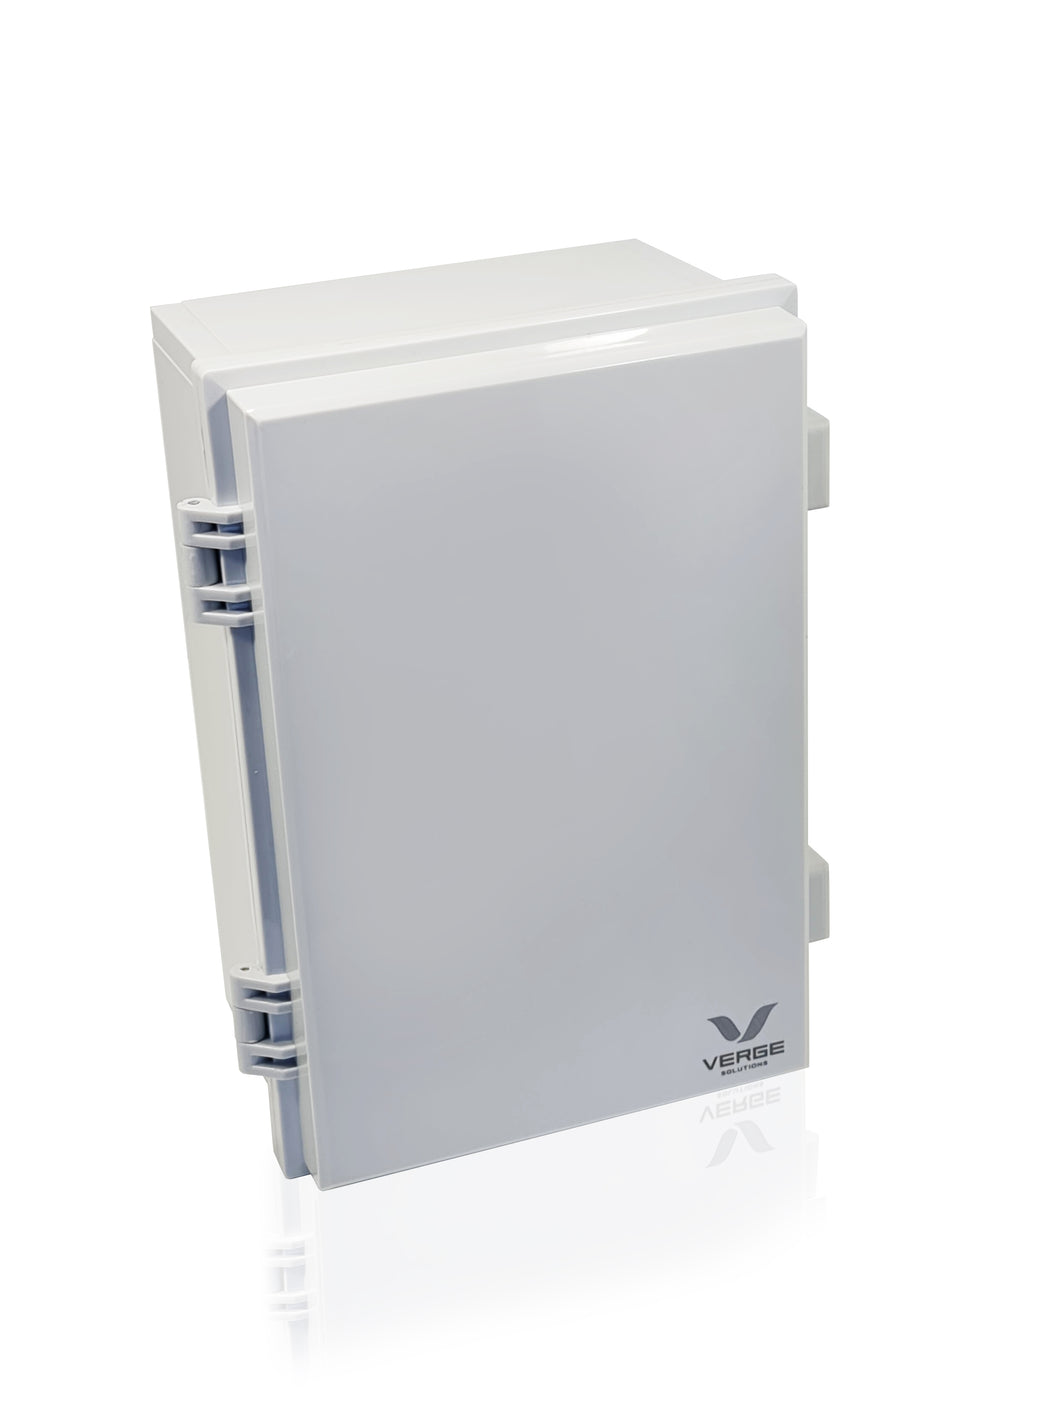 [E2.1] Enclosure Plastic Hinged, Opaque